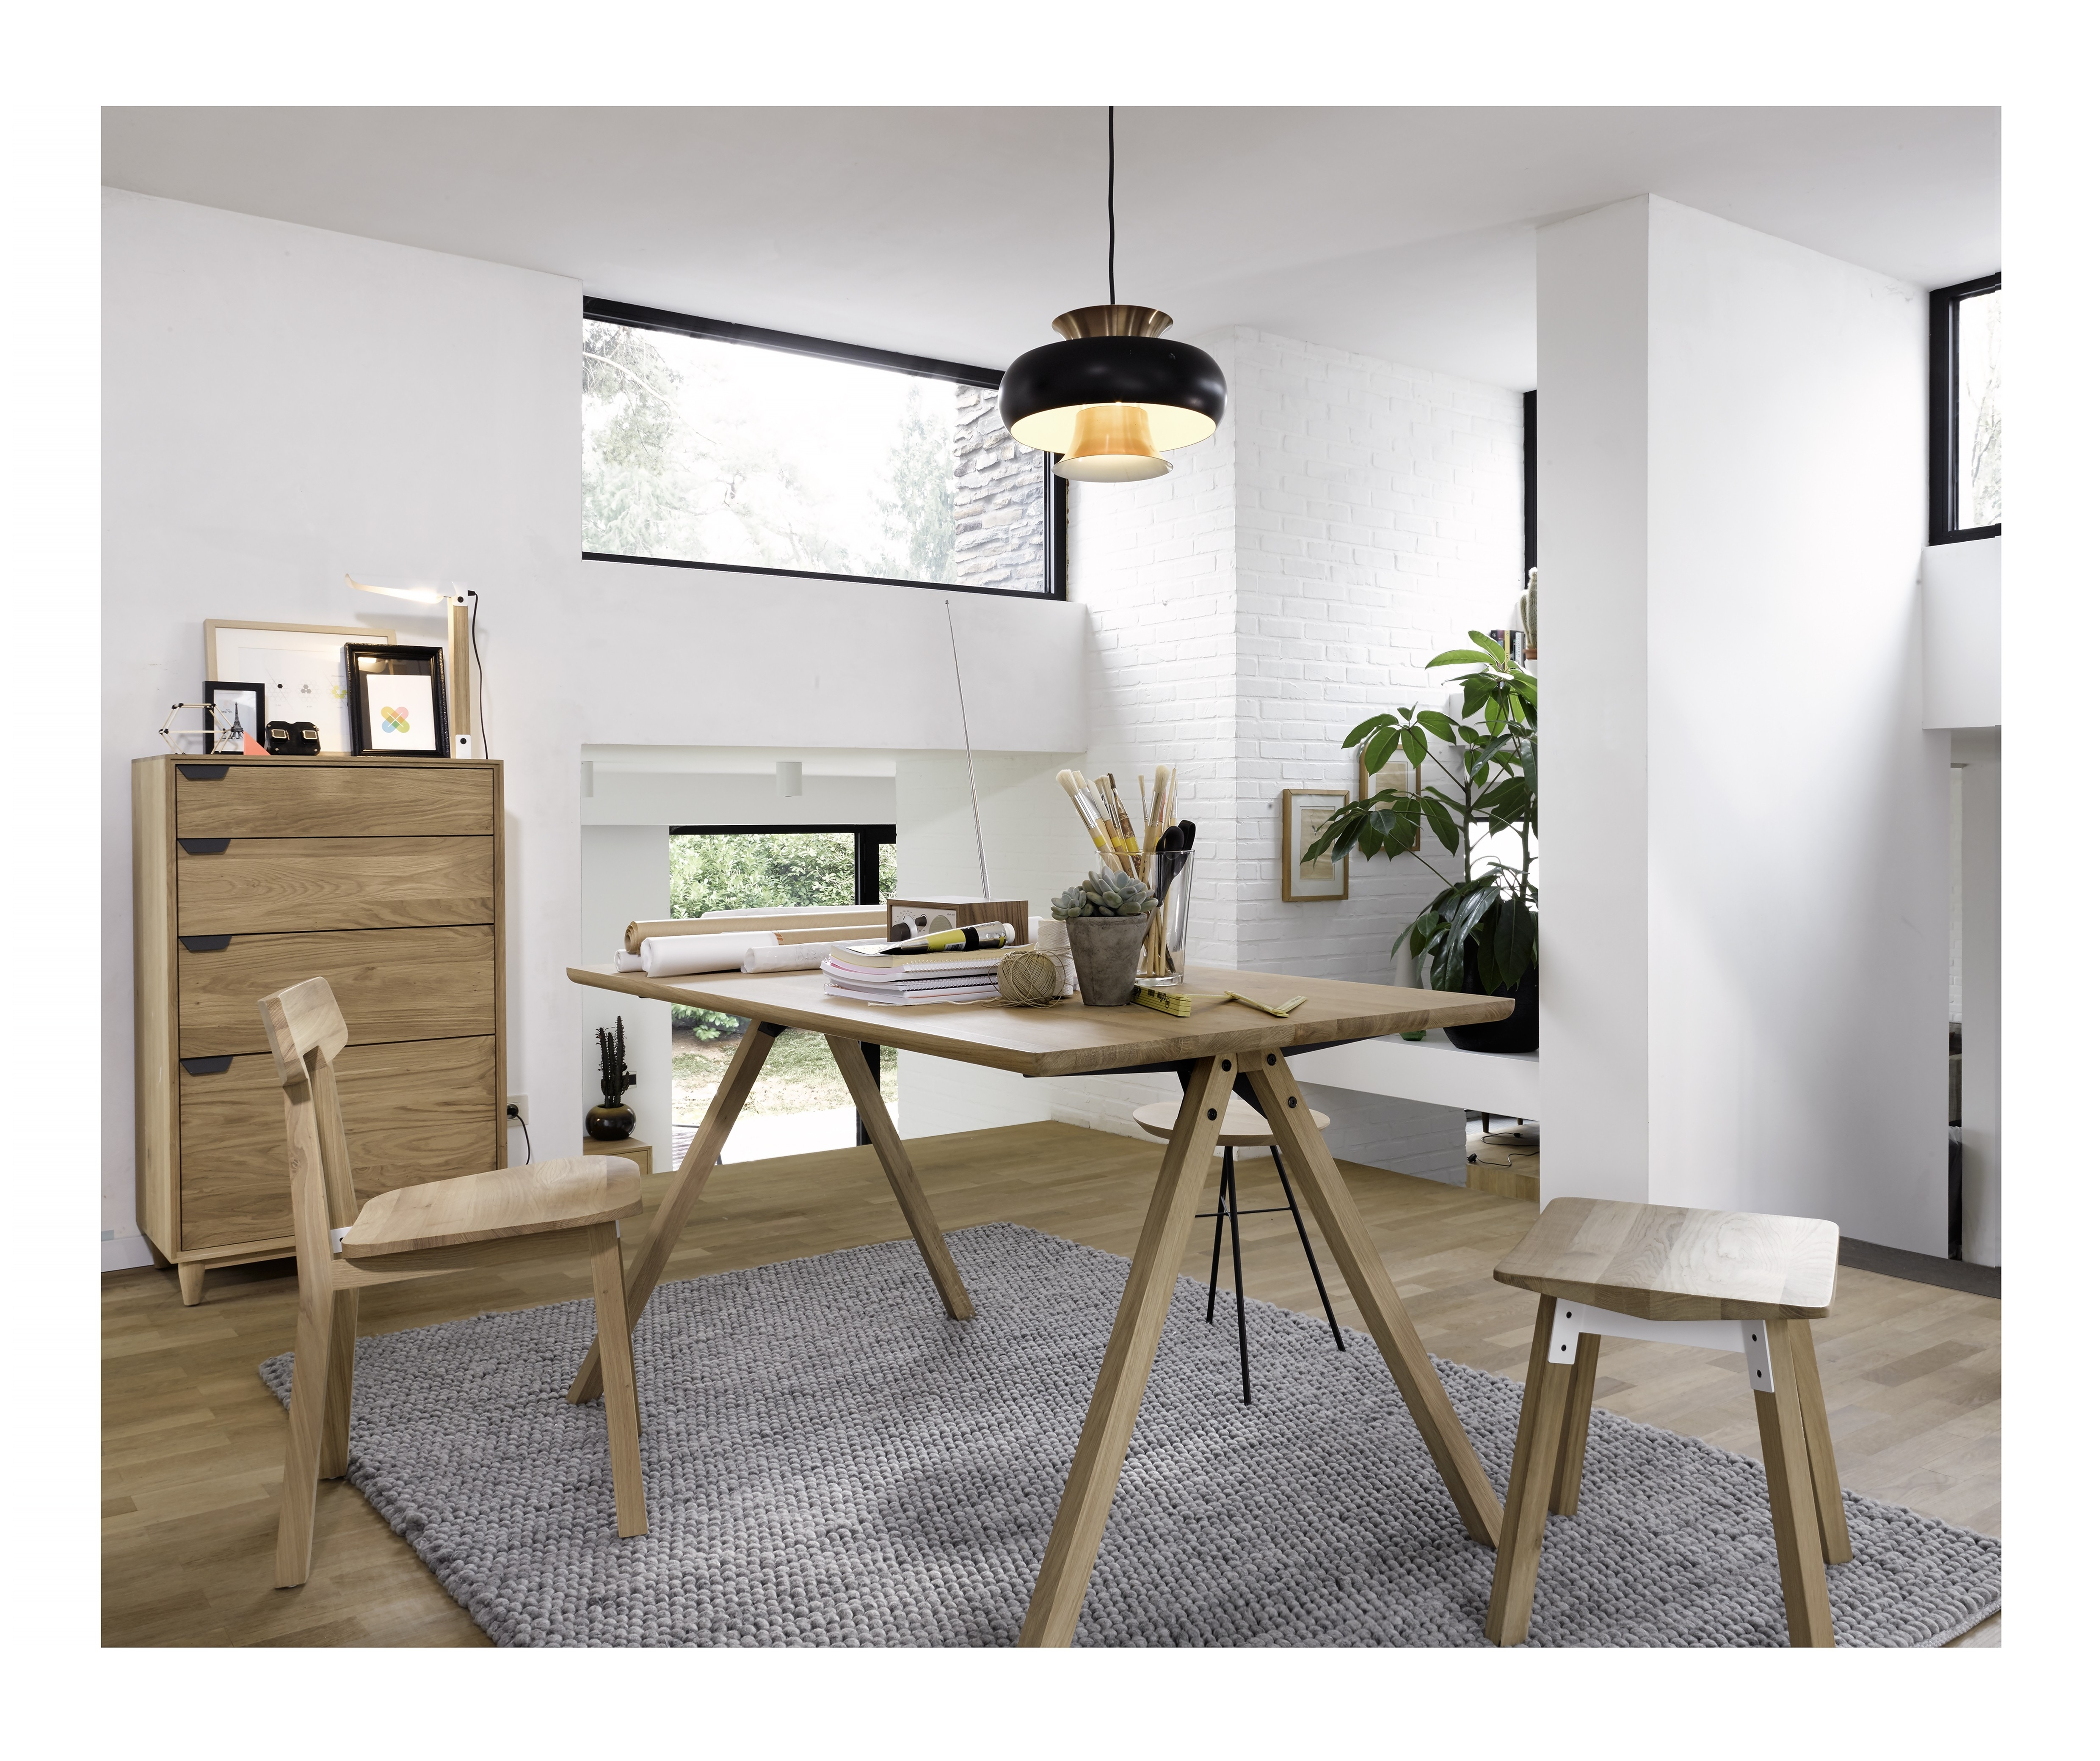 180Cm Dining Tables Within Well Known 180Cm Dining Table – Dining Tables Ideas (Gallery 5 of 25)